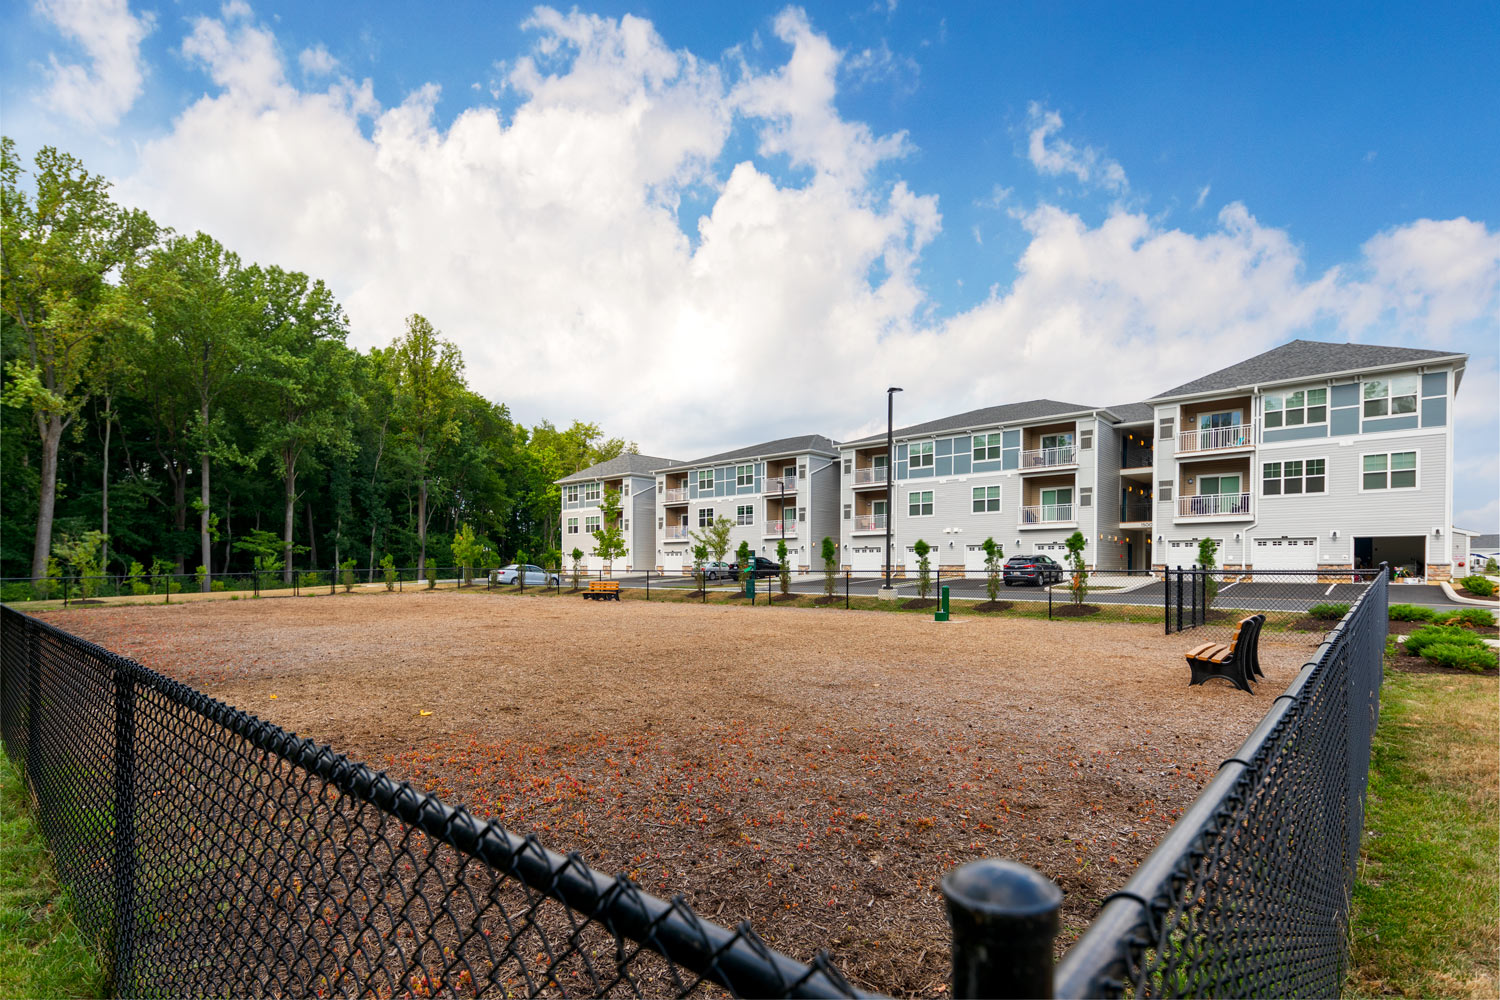 fenced in dog park with apartment buildings in the background - christiana mall apartments